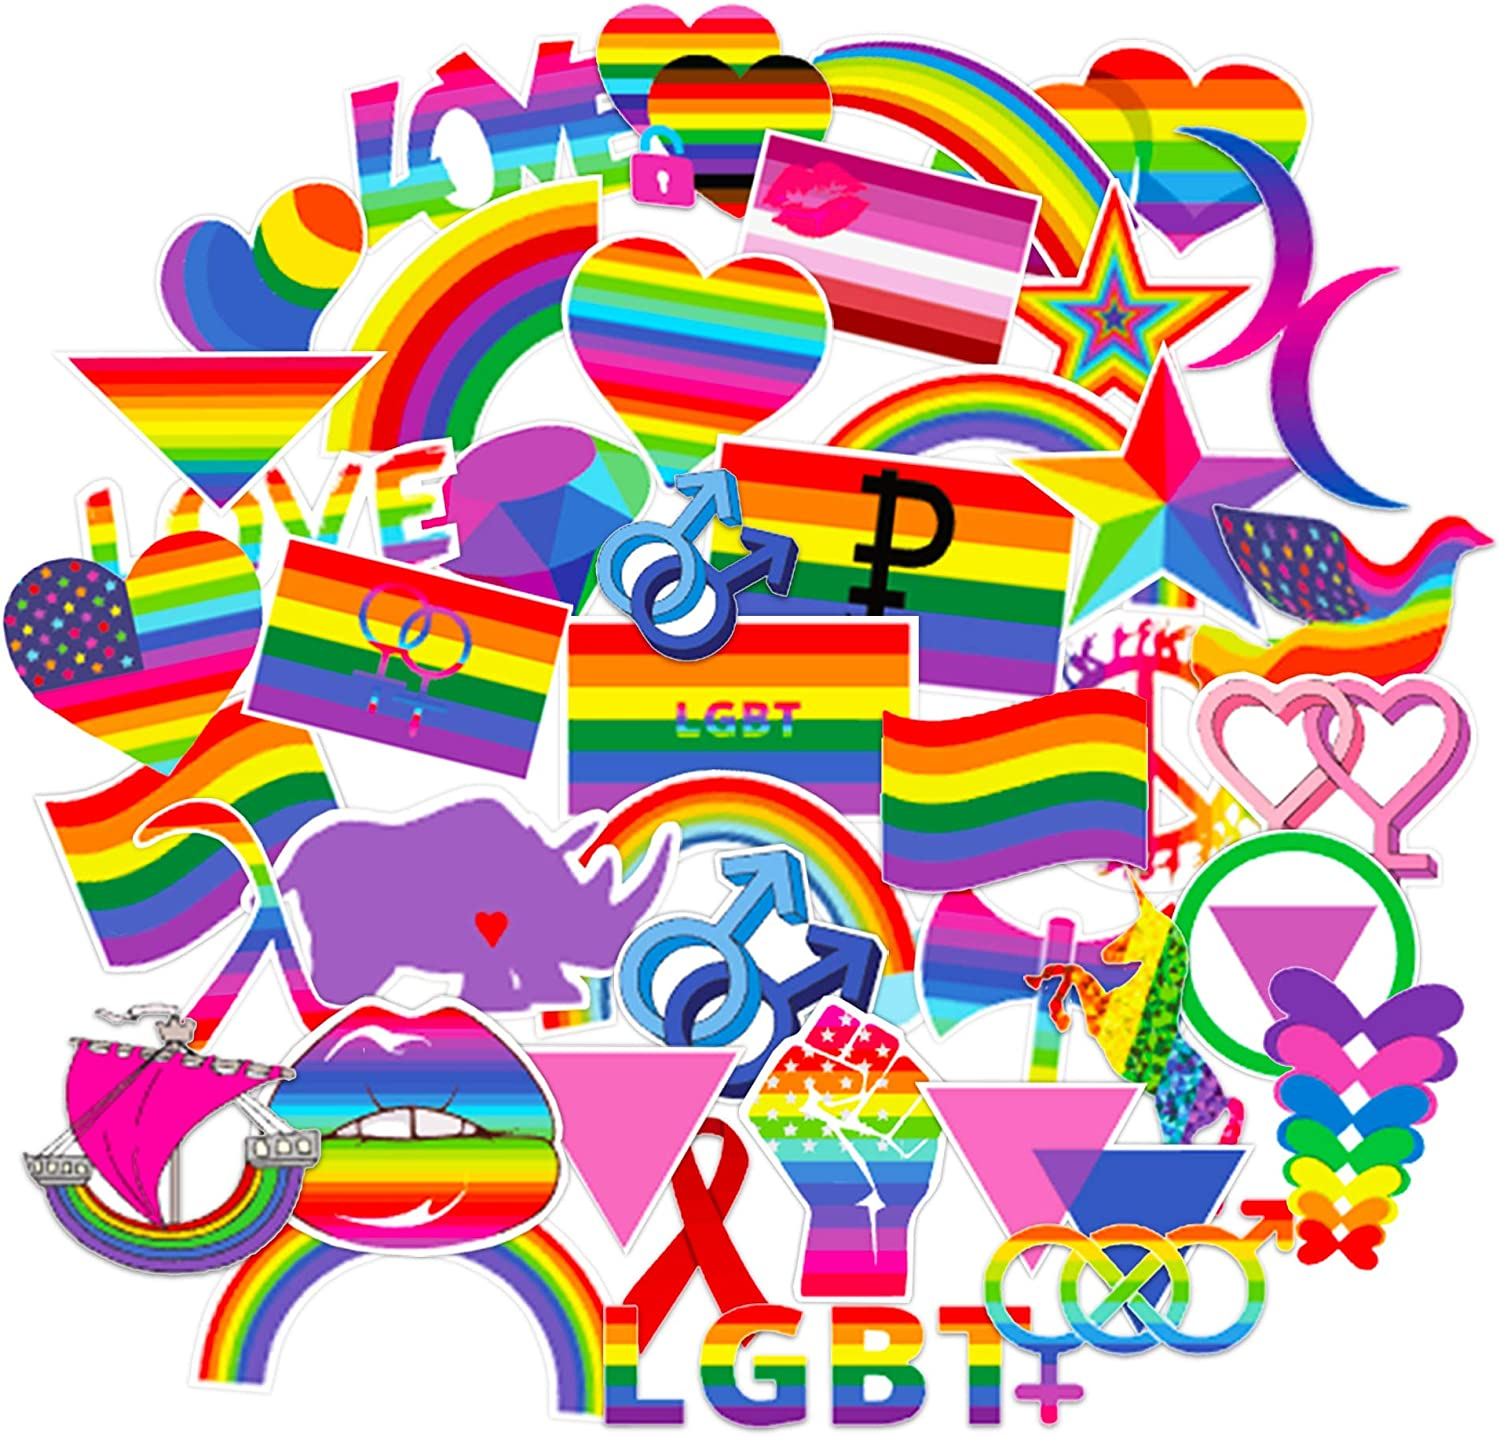 Pride Stickers Variety Pack ~ Over 160 Pride Stickers! ~ Gay Lesbian LGBT+ Rainbow Flag Sticker Pack for Water Bottle, Car, Bike, Suitcase, Phone, Laptop, Cup, Notebook